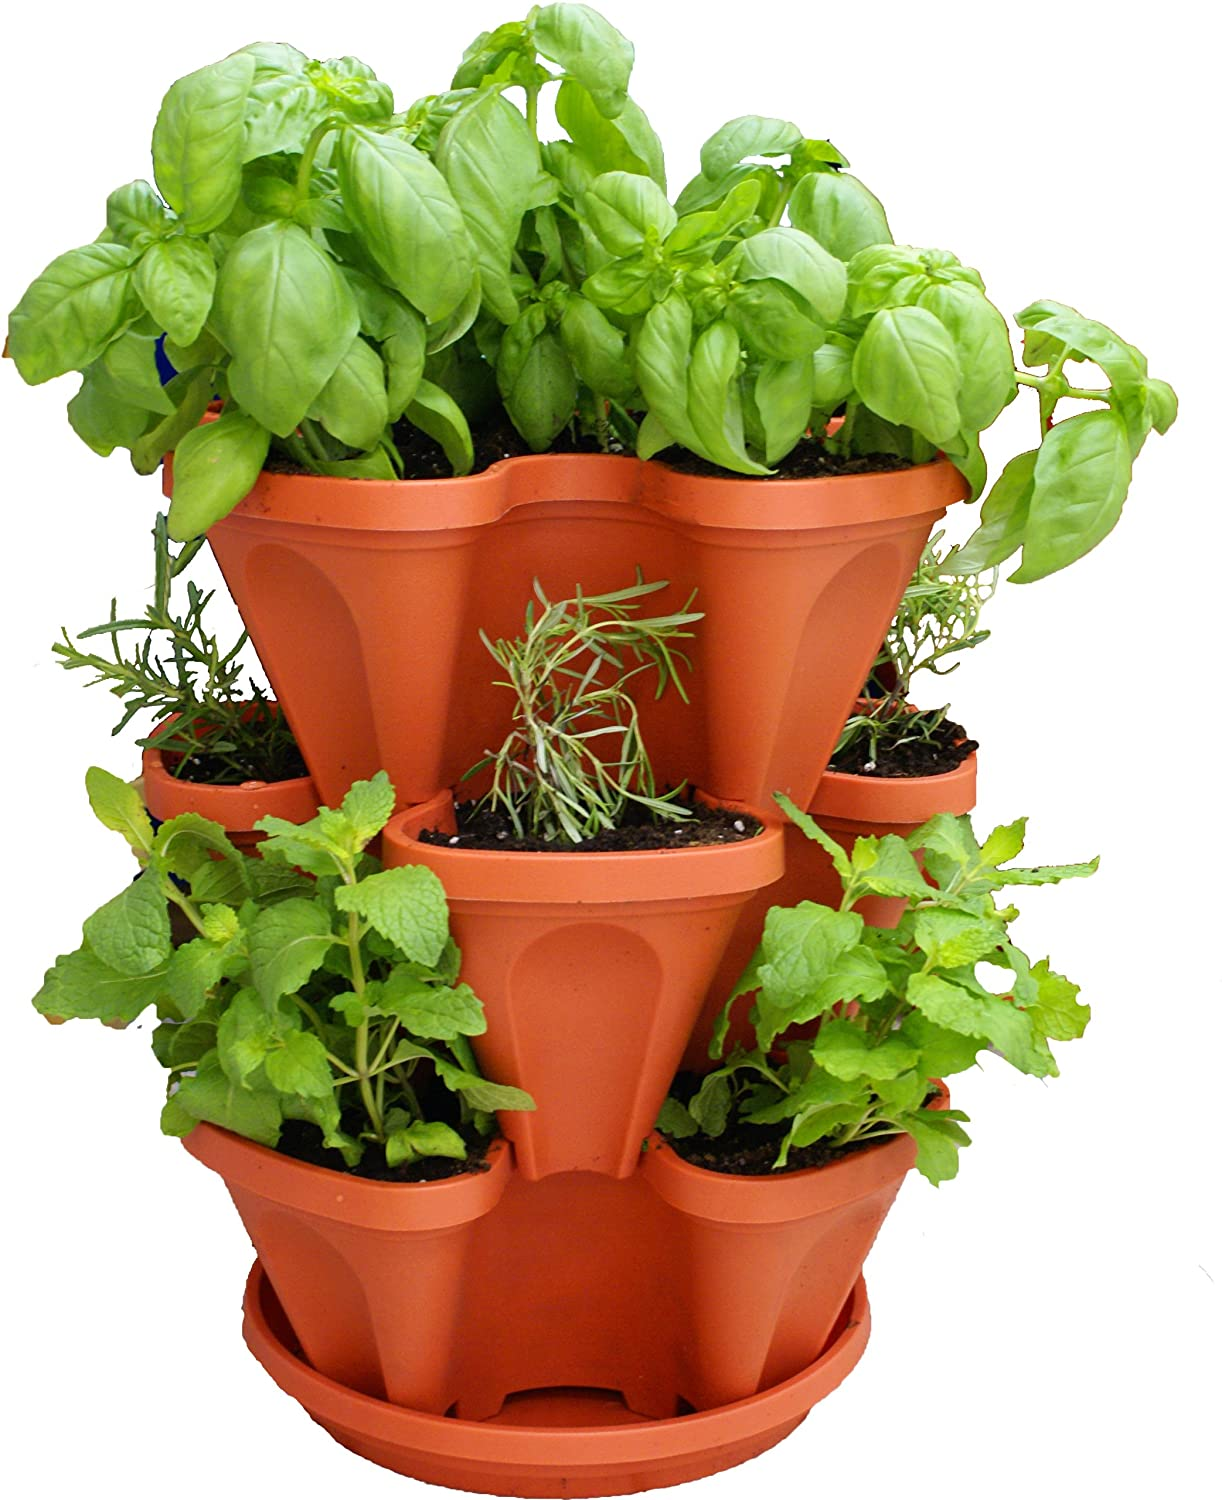 Amazon.com: 3 Tiered Stackable Indoor Outdoor Vertical Herb Planter   Learn  How To Grow Organic Herbs Easy With These Terra Cotta Plastic Containers    Great ...